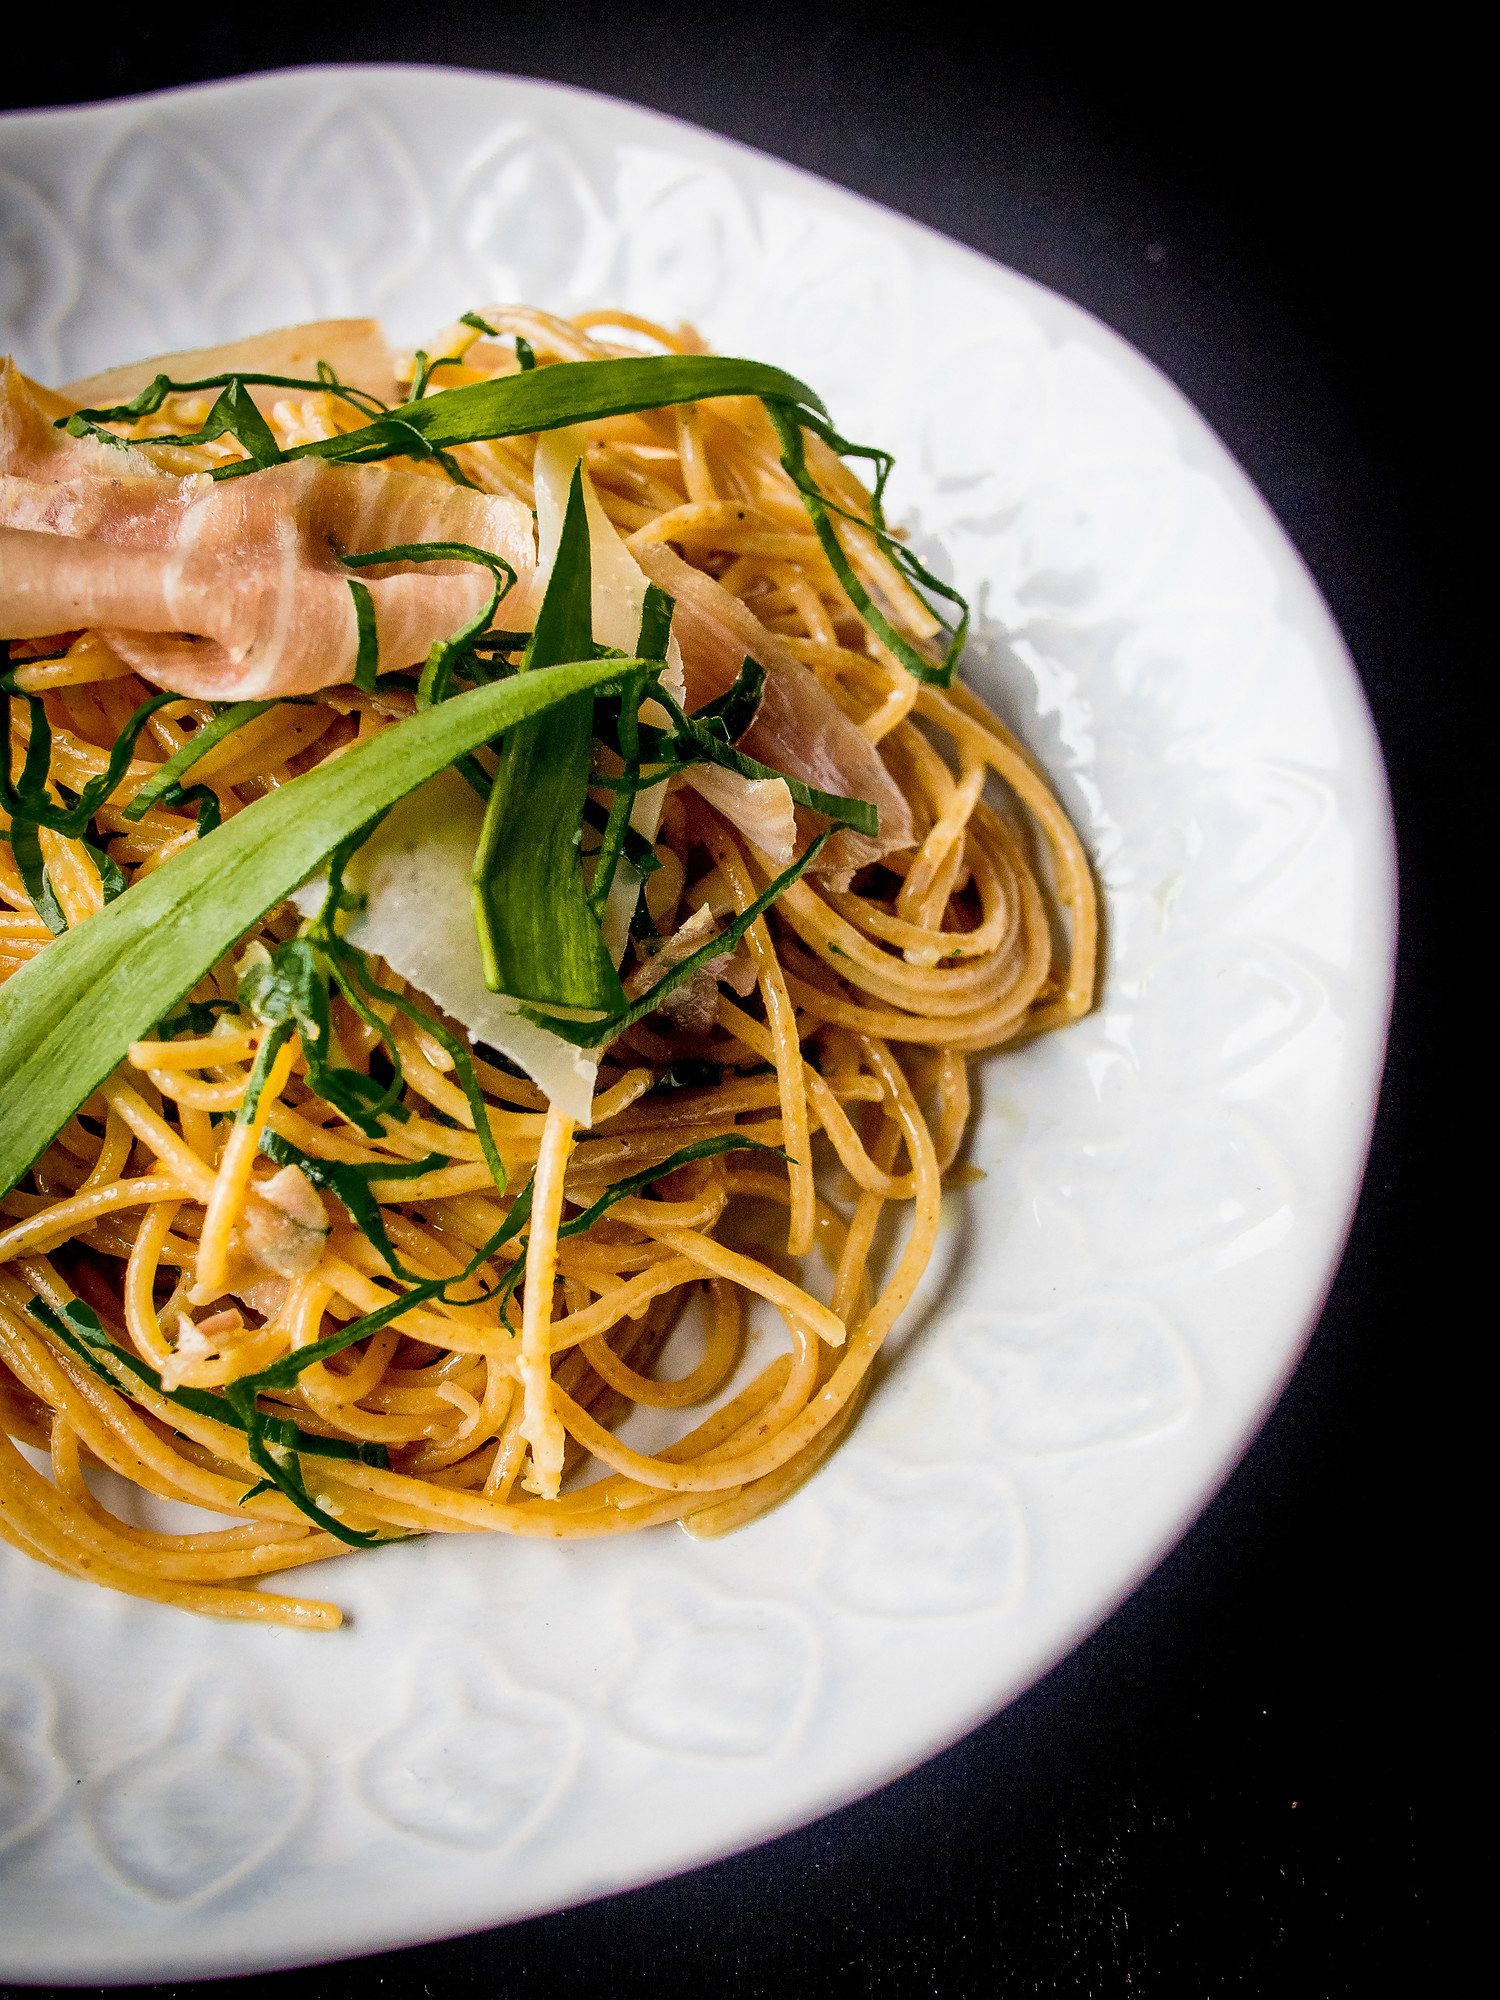 Popular pasta dishes: ramp pasta with prosciutto and parmesan. It used foraged wild leeks and takes less than 10 minutes to make.